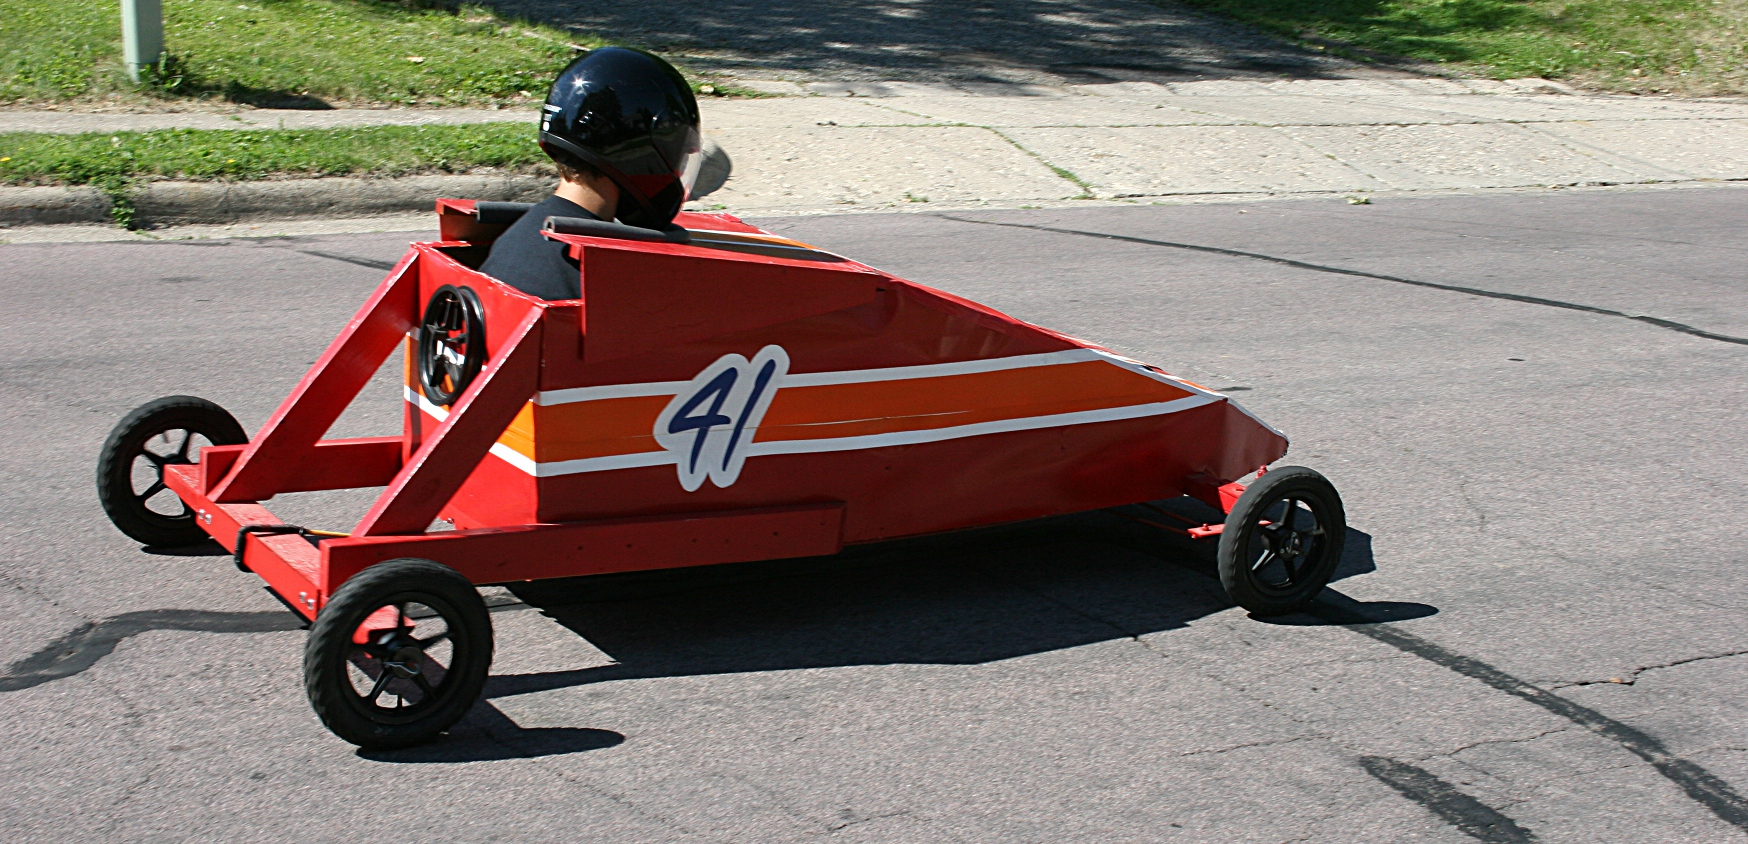 All-American Soap Box Derby | Minnesota Prairie Roots on balloon powered car designs, anime car designs, tattoo car designs, rocket car designs, italian car designs, sexy car designs, vintage car designs, cartoon car designs, the crew car designs, funny car designs, extreme car designs,